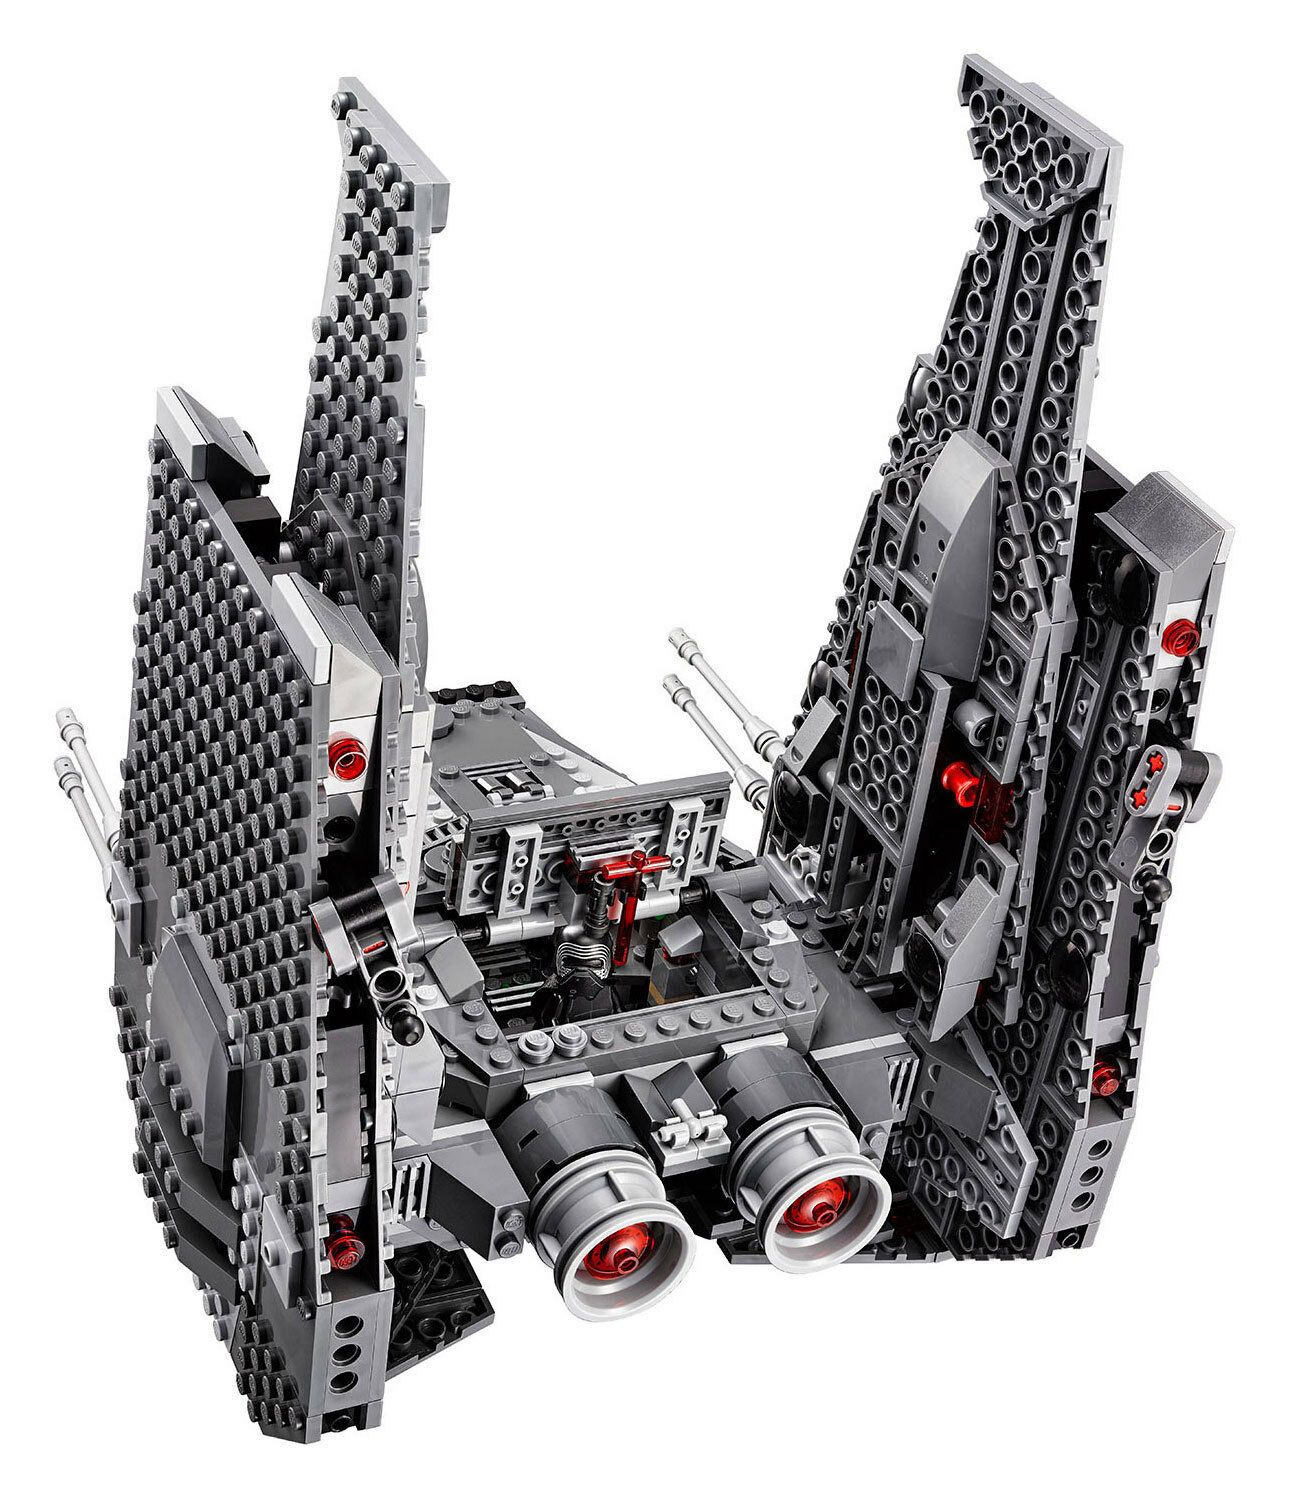 LEGO Star Wars Kylo Ren's Command Shuttle (75104) New - 1005pcs 6 minifigs